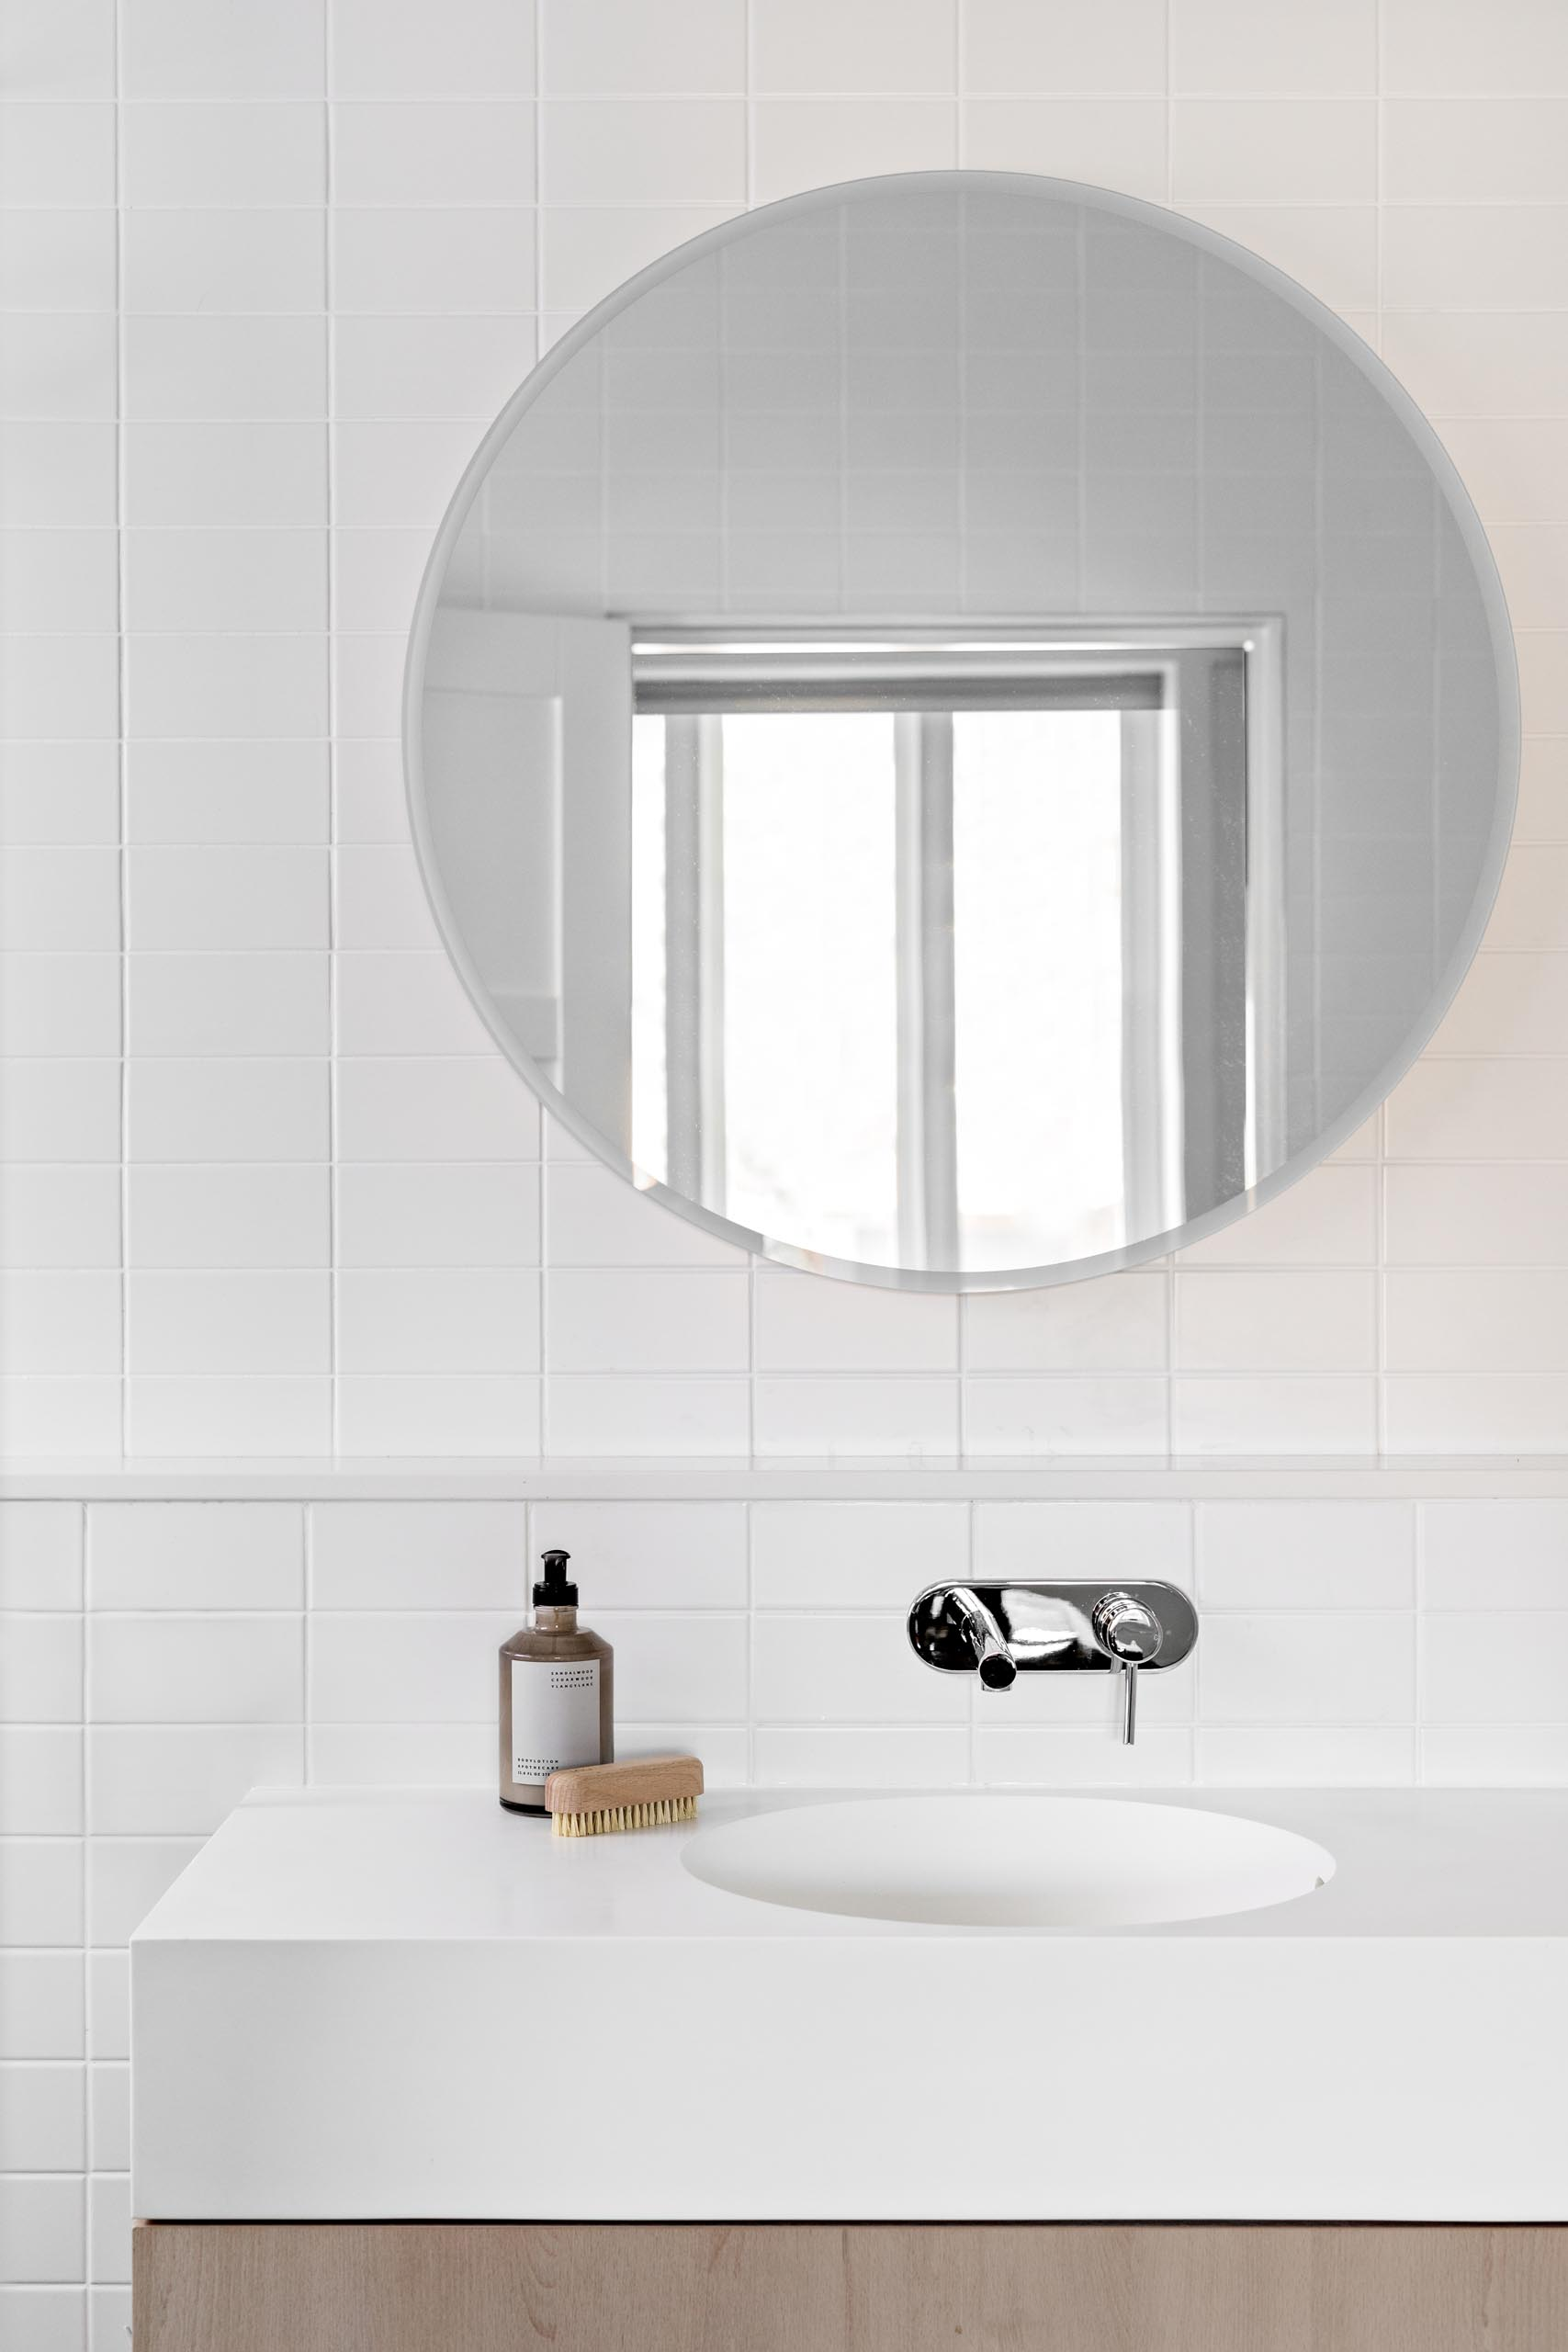 A modern white bathroom with white tiles, white grout, a round mirror, and wood vanity with thick white countertop.